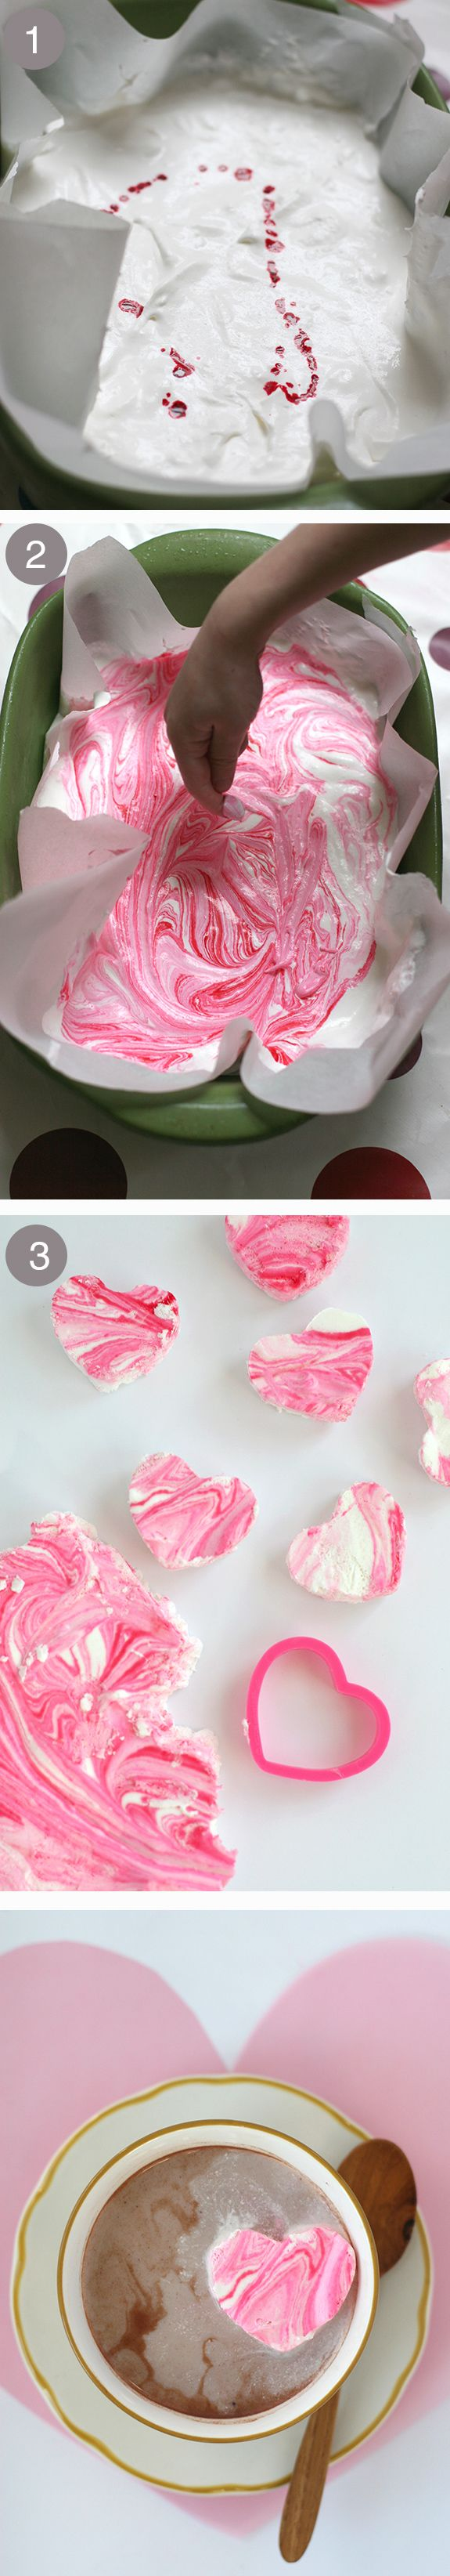 Peppermint marshmallows | Holidays | Pinterest